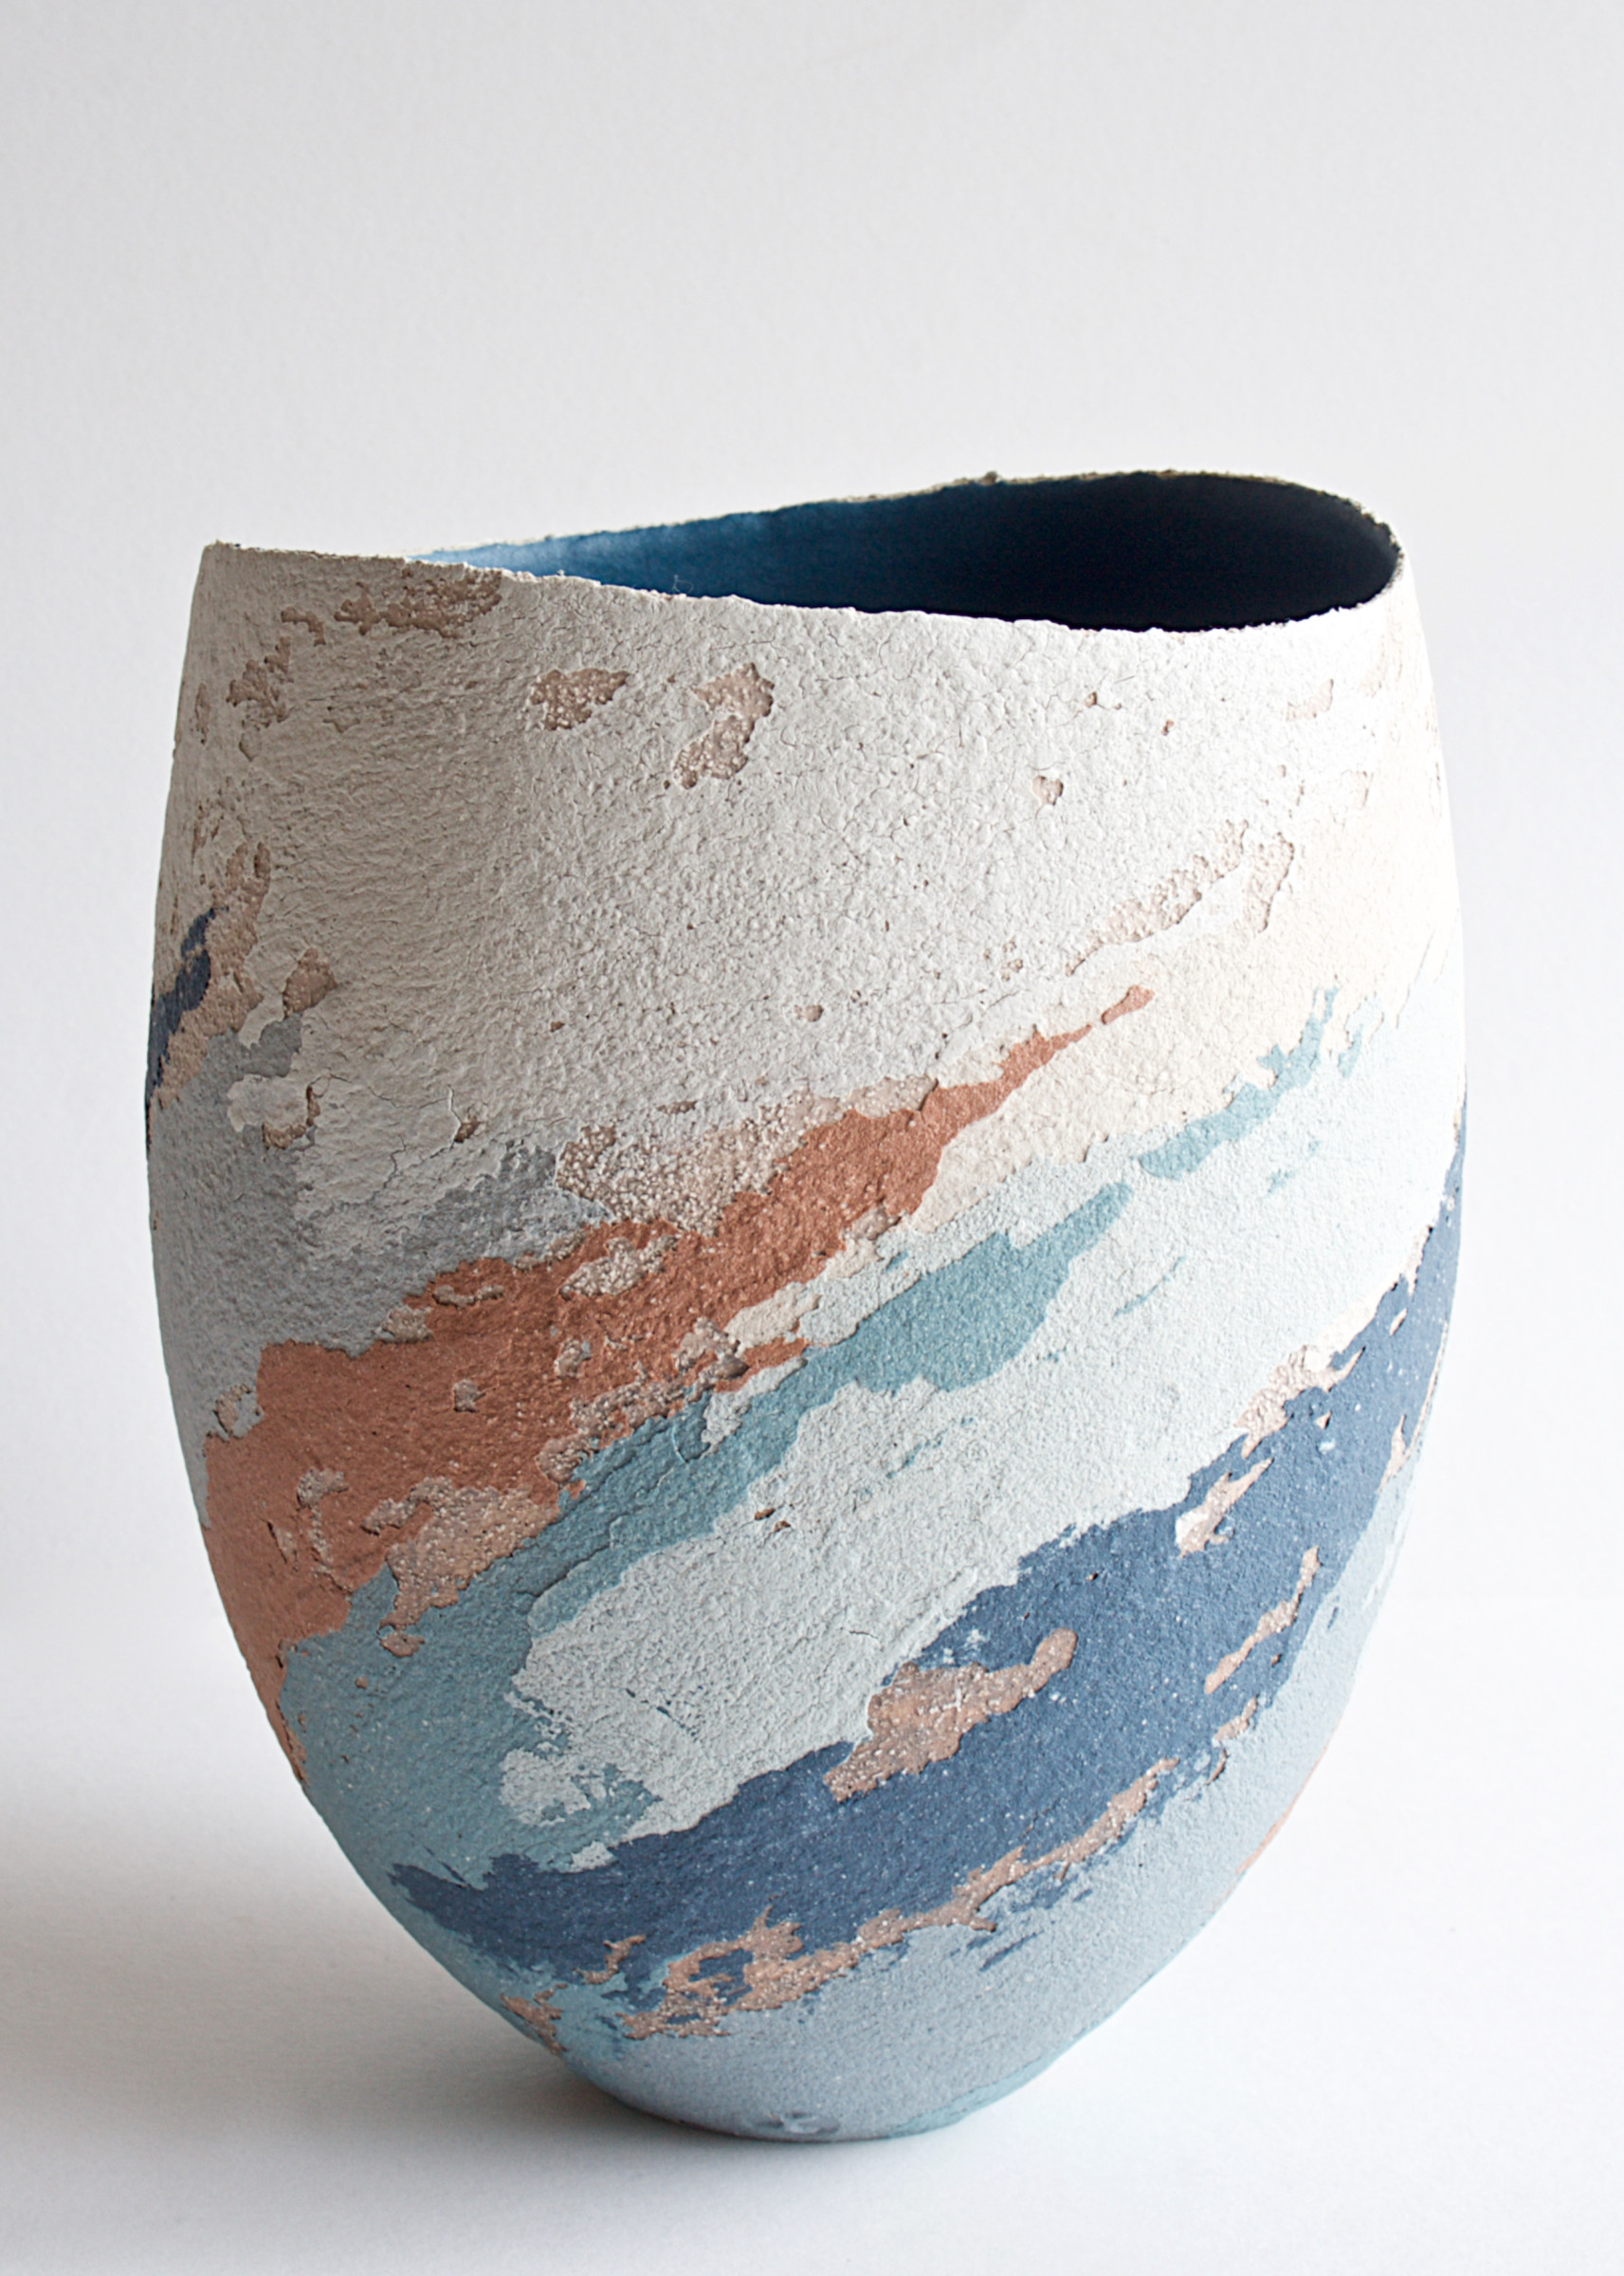 "<span class=""link fancybox-details-link""><a href=""/artists/79-clare-conrad/works/6926-clare-conrad-vessel-scooped-rim-2020/"">View Detail Page</a></span><div class=""artist""><strong>Clare Conrad</strong></div> <div class=""title""><em>Vessel, scooped rim</em>, 2020</div> <div class=""medium"">Stoneware</div> <div class=""dimensions"">h. 18cm</div><div class=""price"">£275.00</div><div class=""copyright_line"">Copyright The Artist</div>"